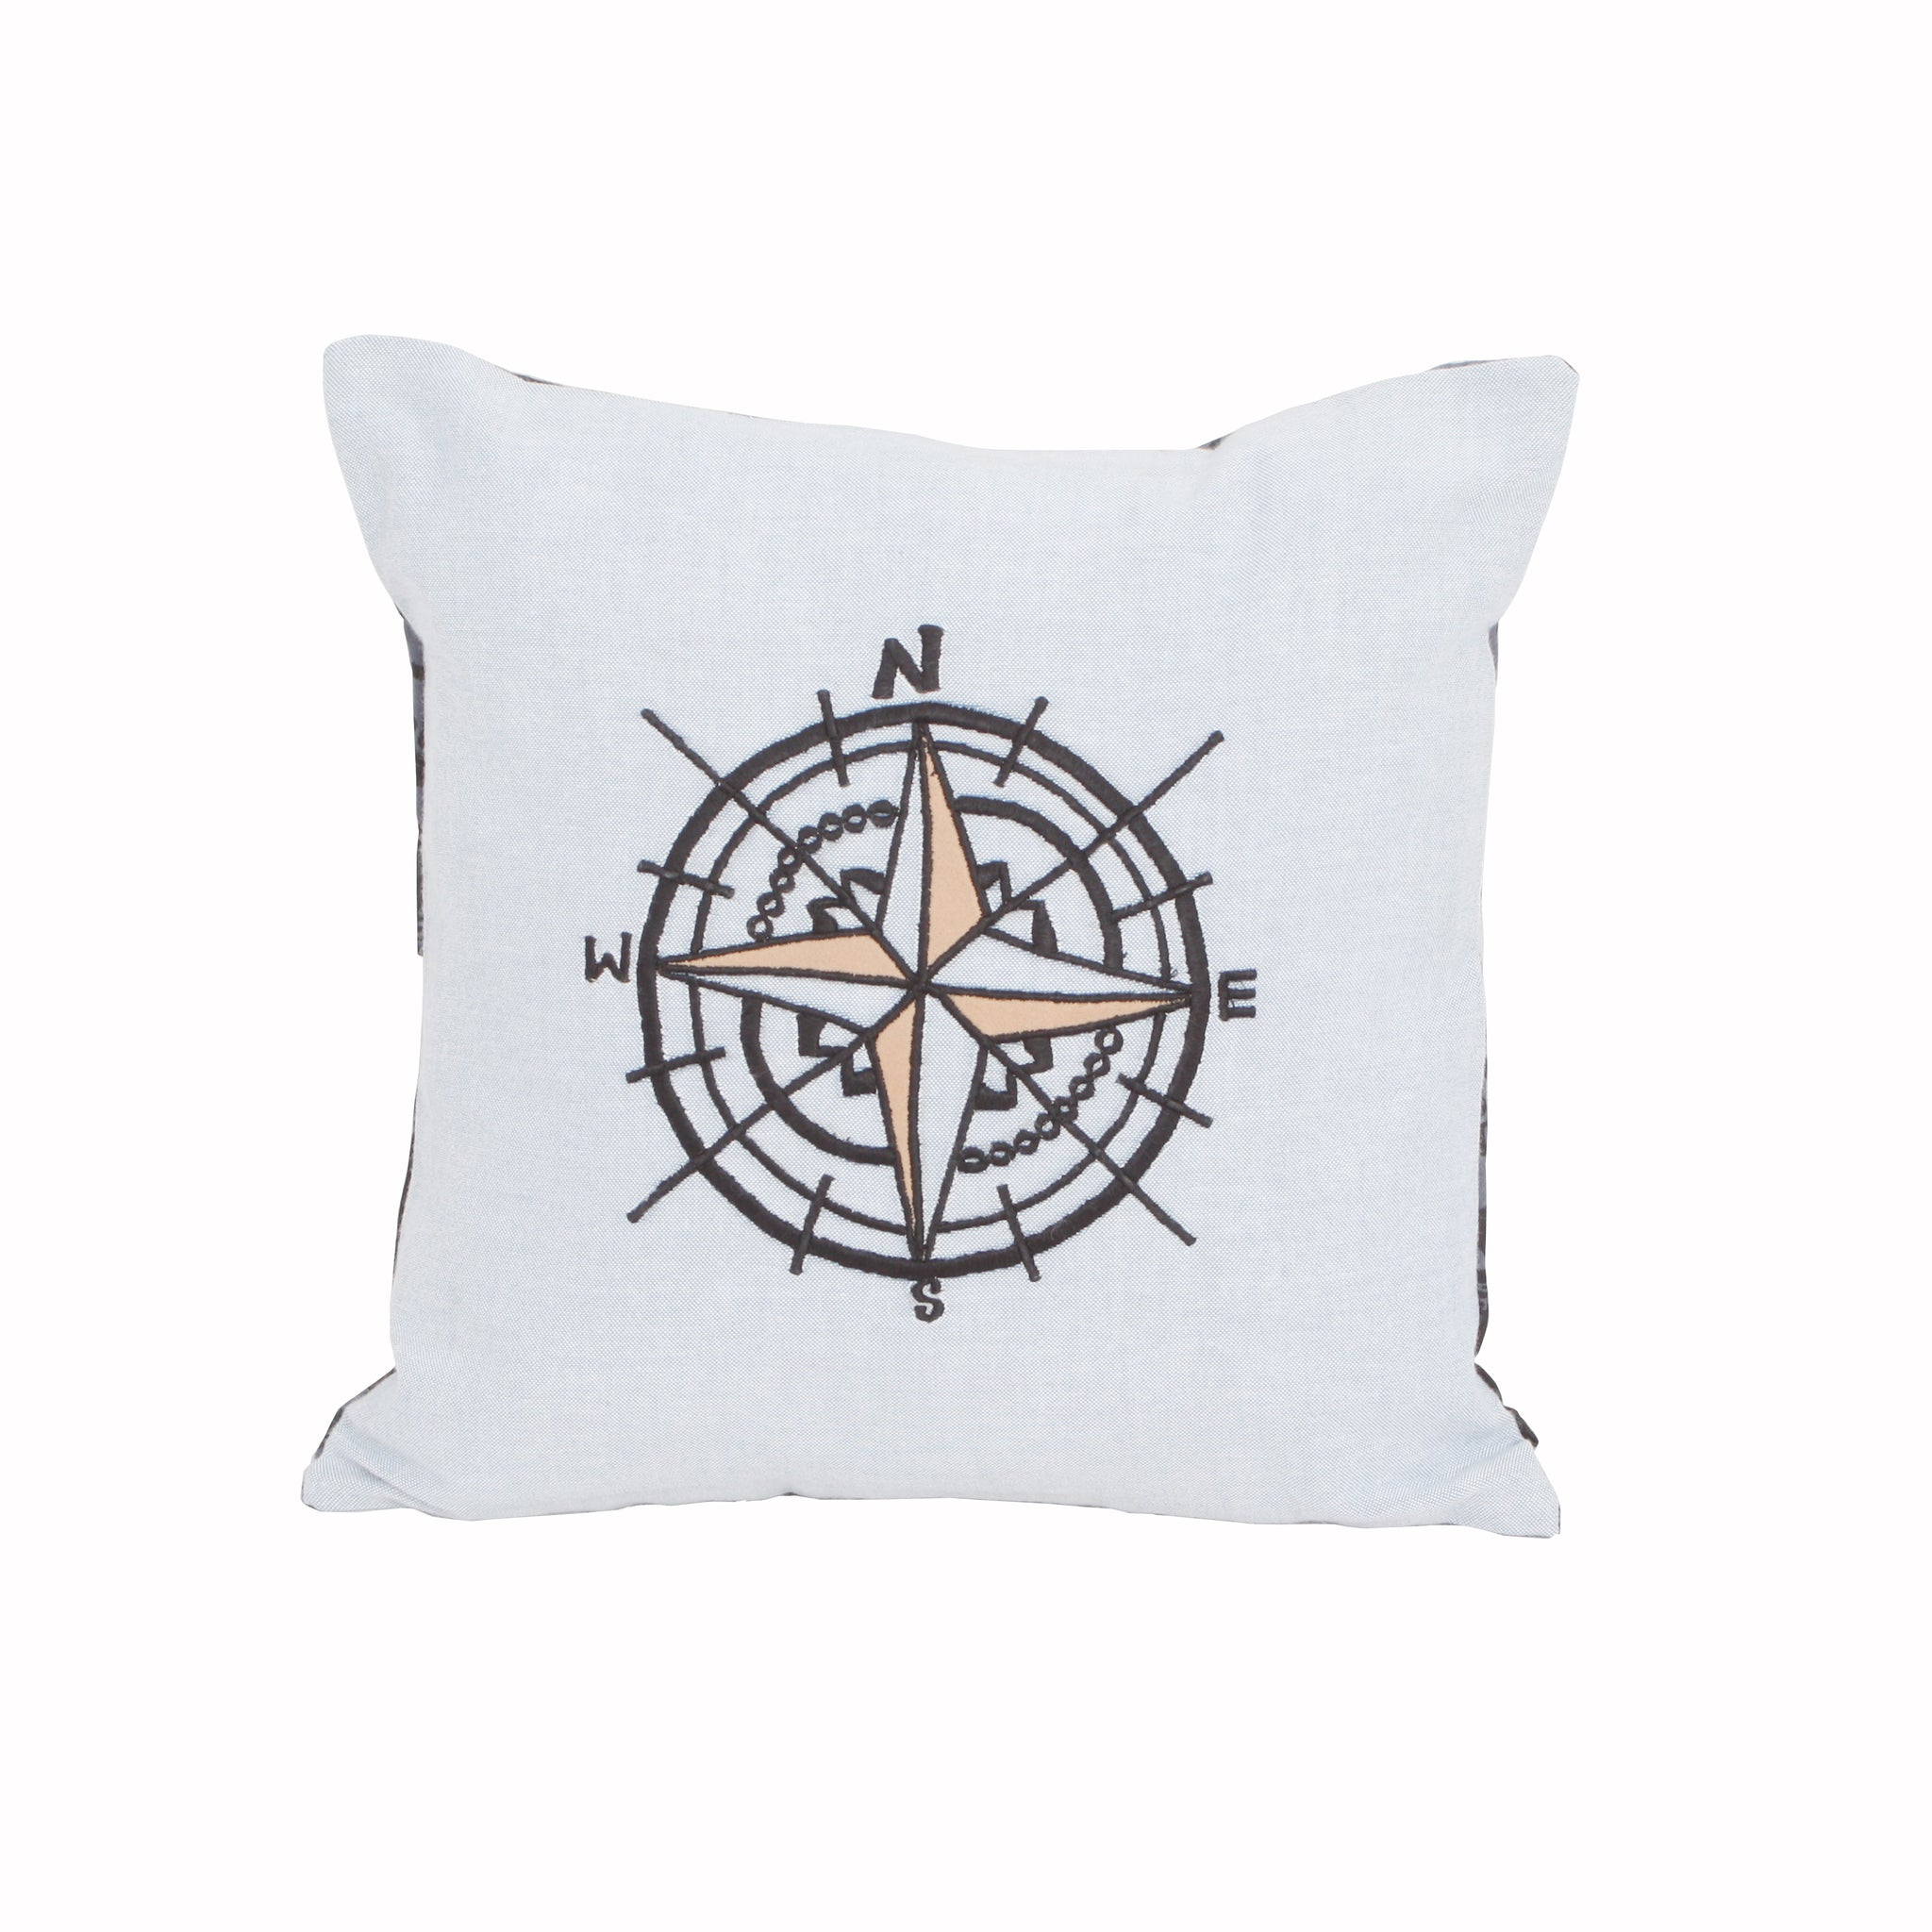 "Wanderlust-Compass 12"" x 12"" Cushion Cover"